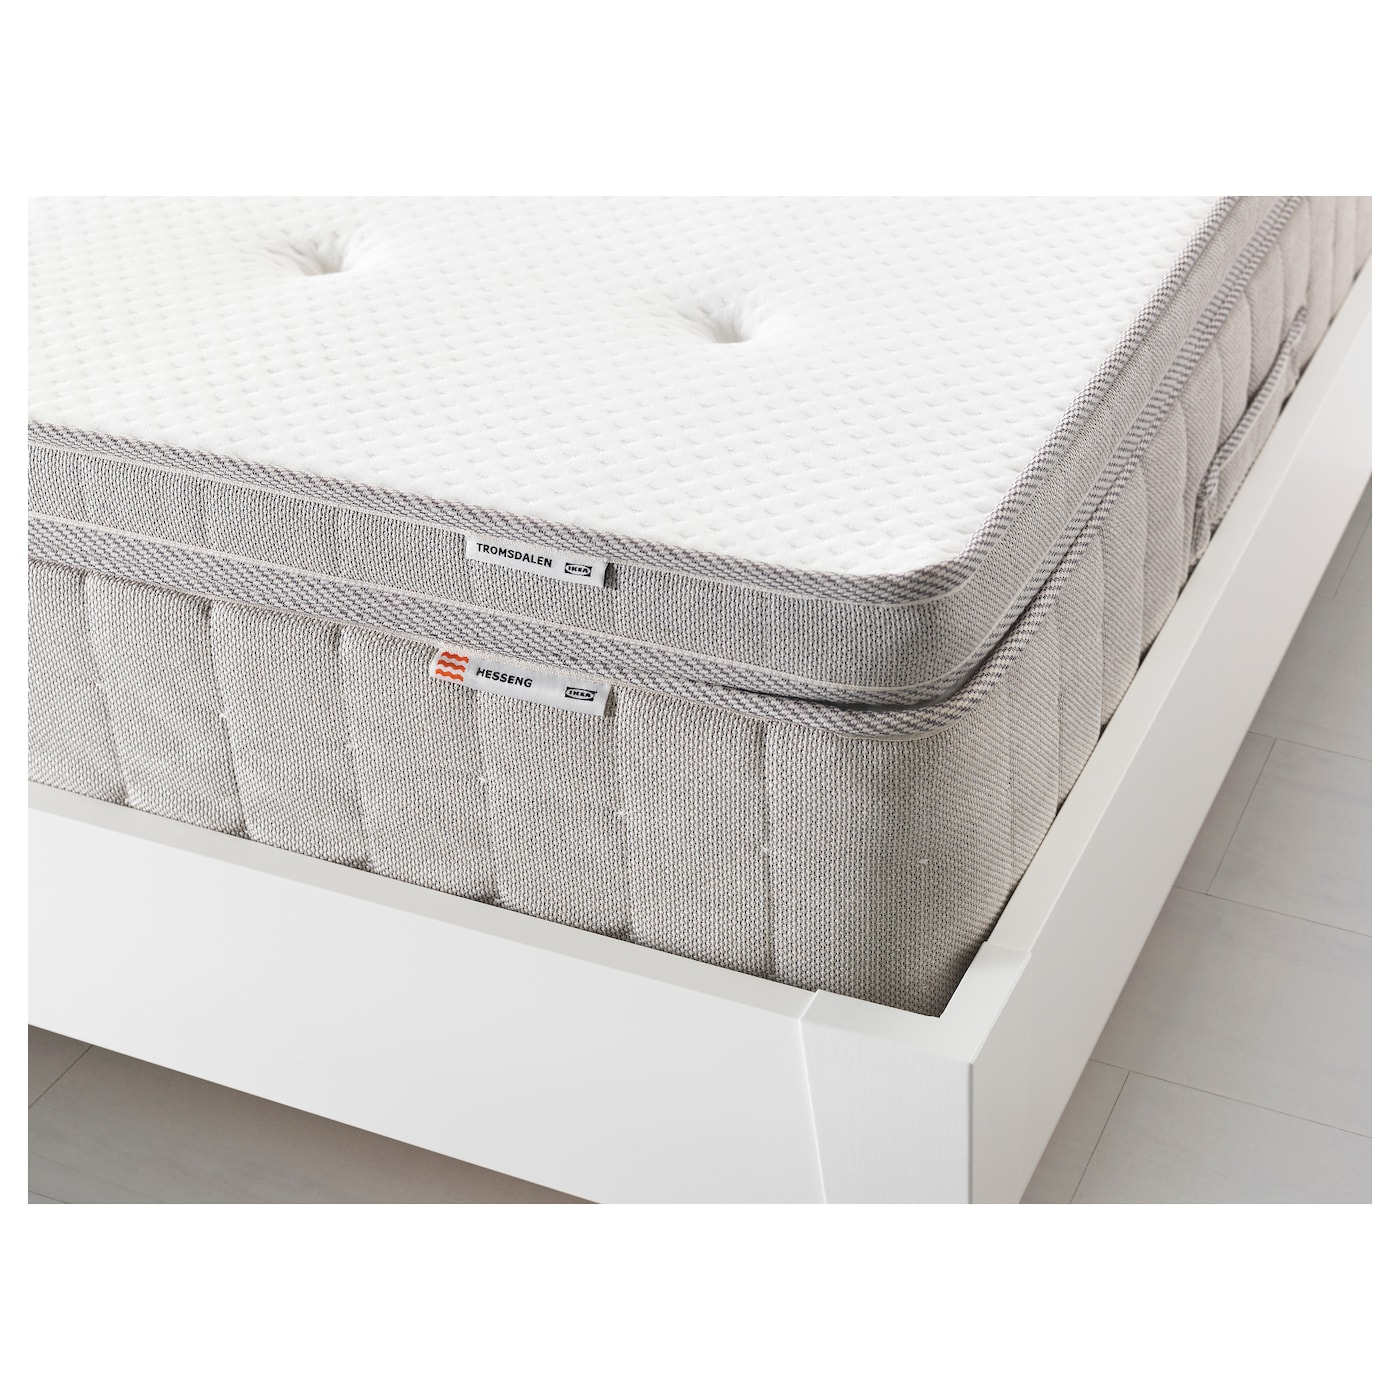 TROMSDALEN Mattress topper Natural colour Standard Double